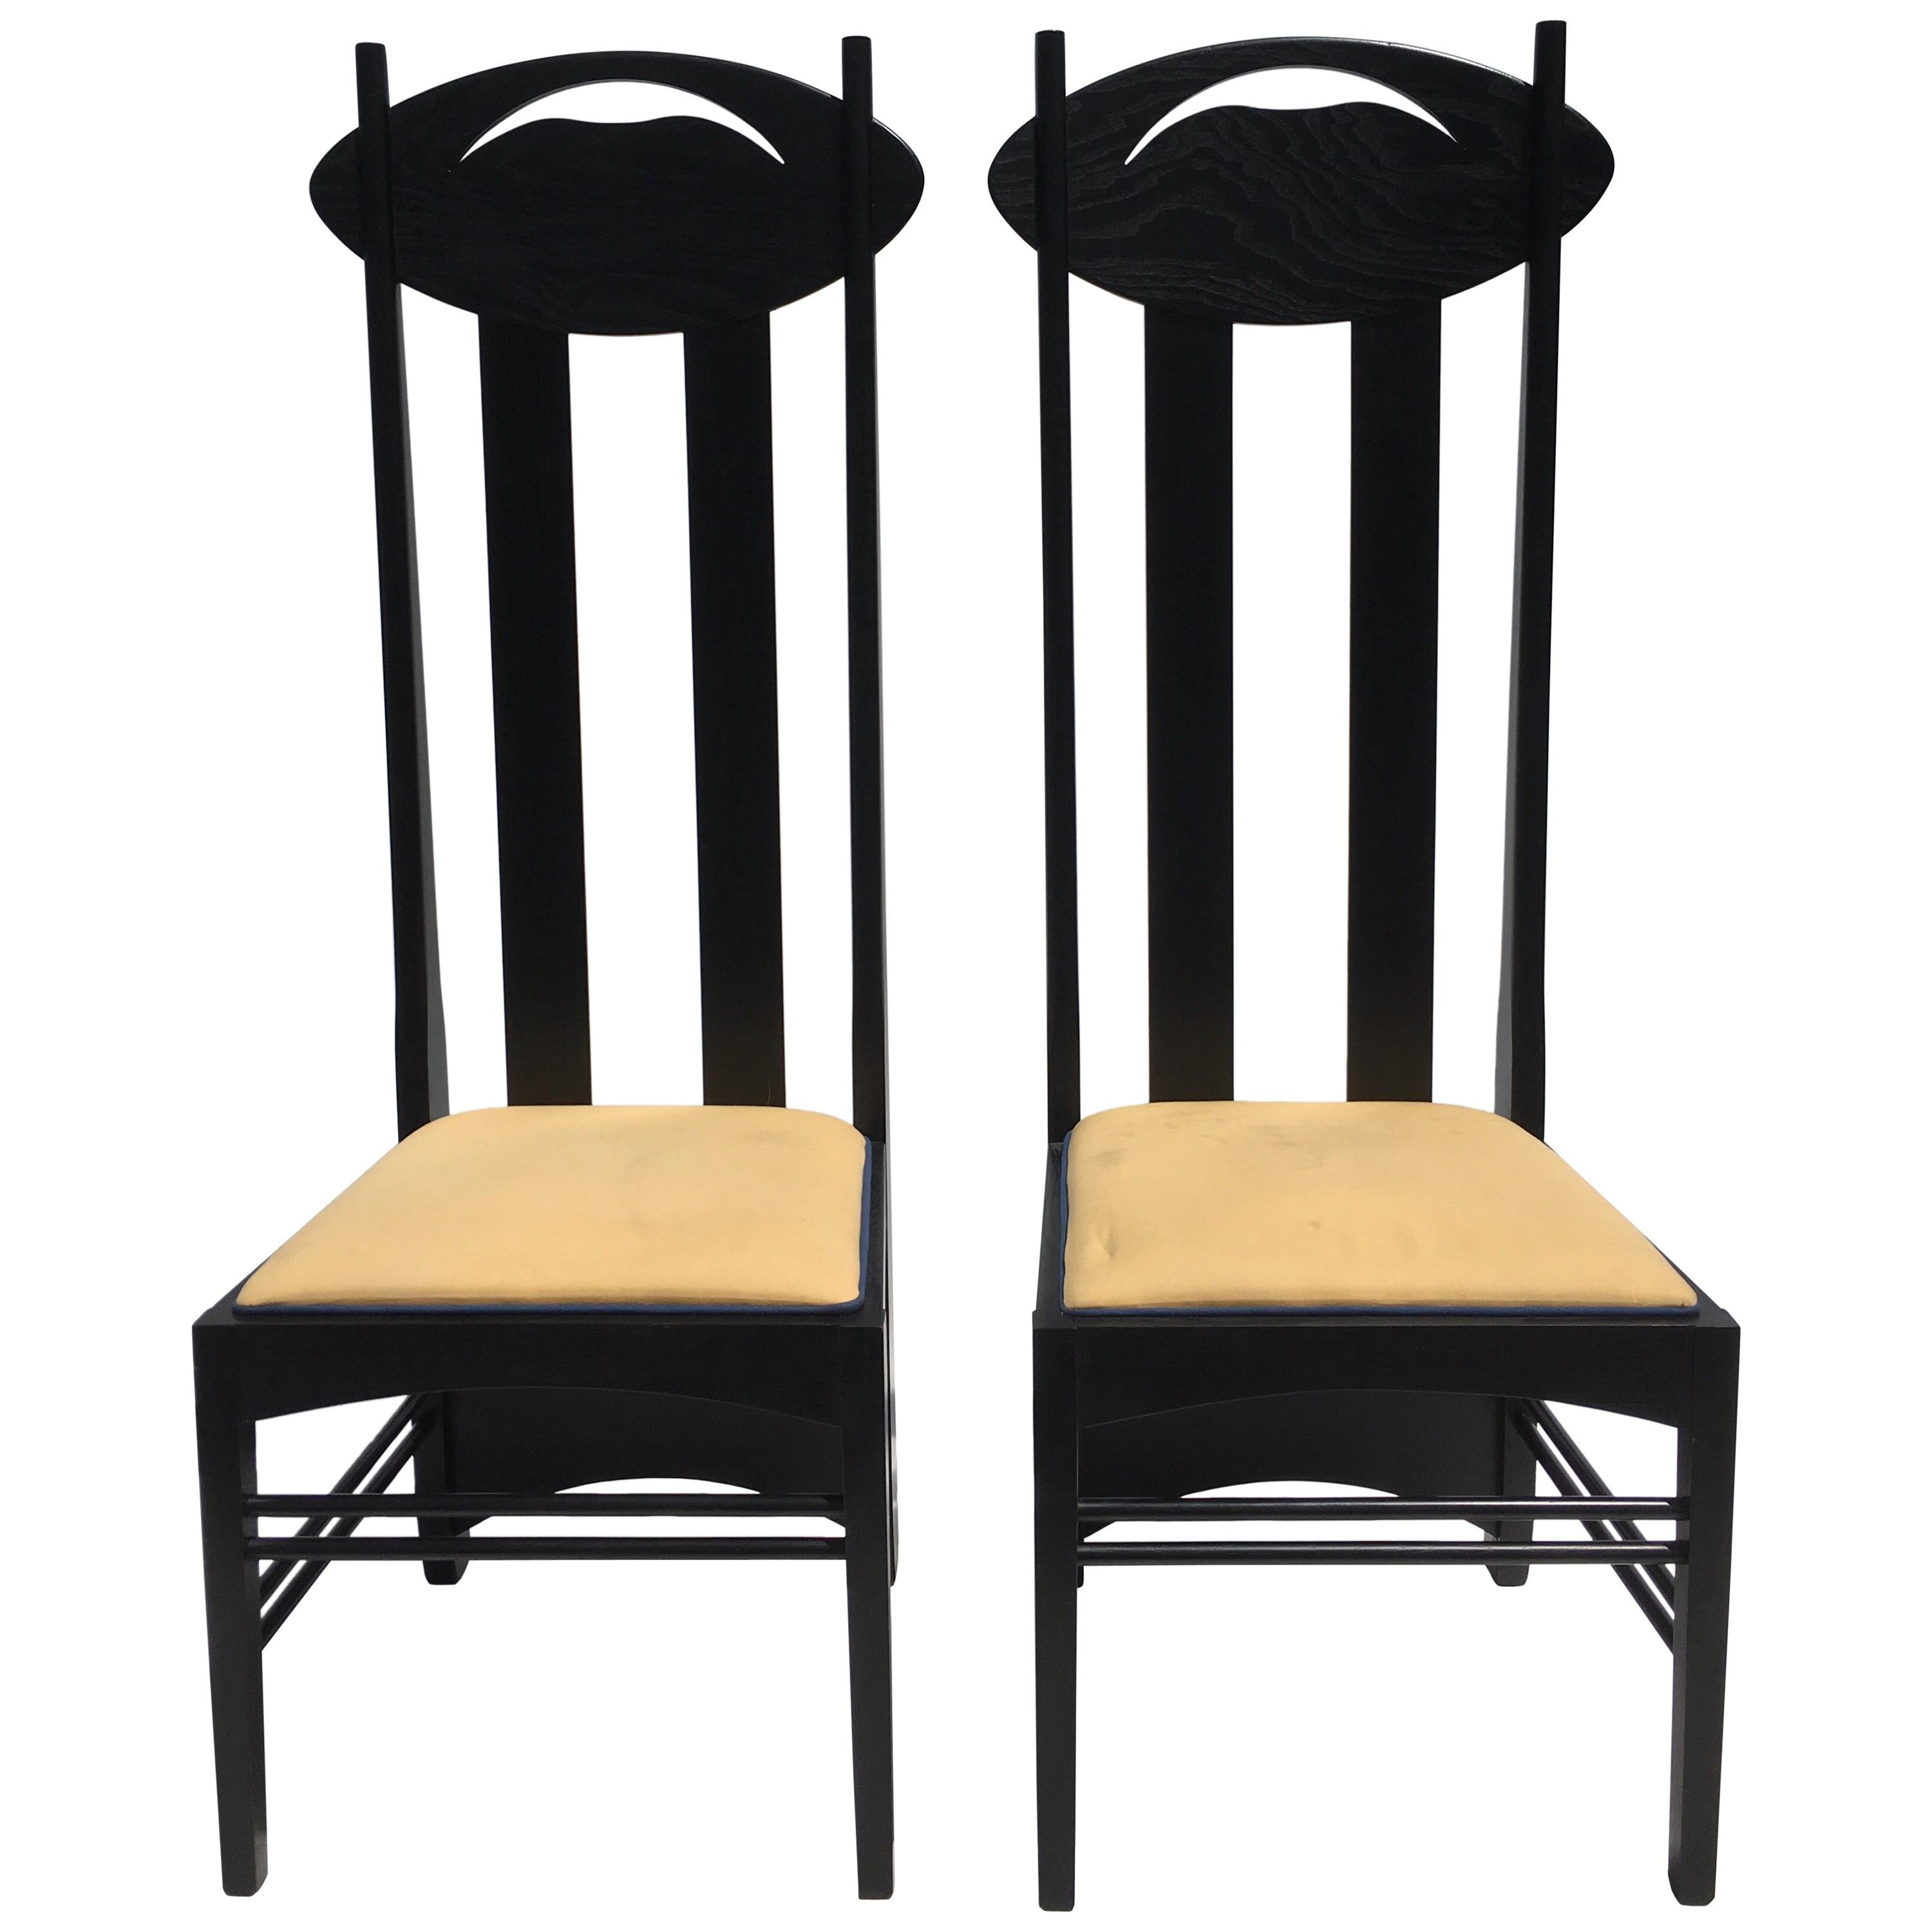 tall back chairs best outdoor folding two charles rennie mackintosh by cassina at 1stdibs for sale